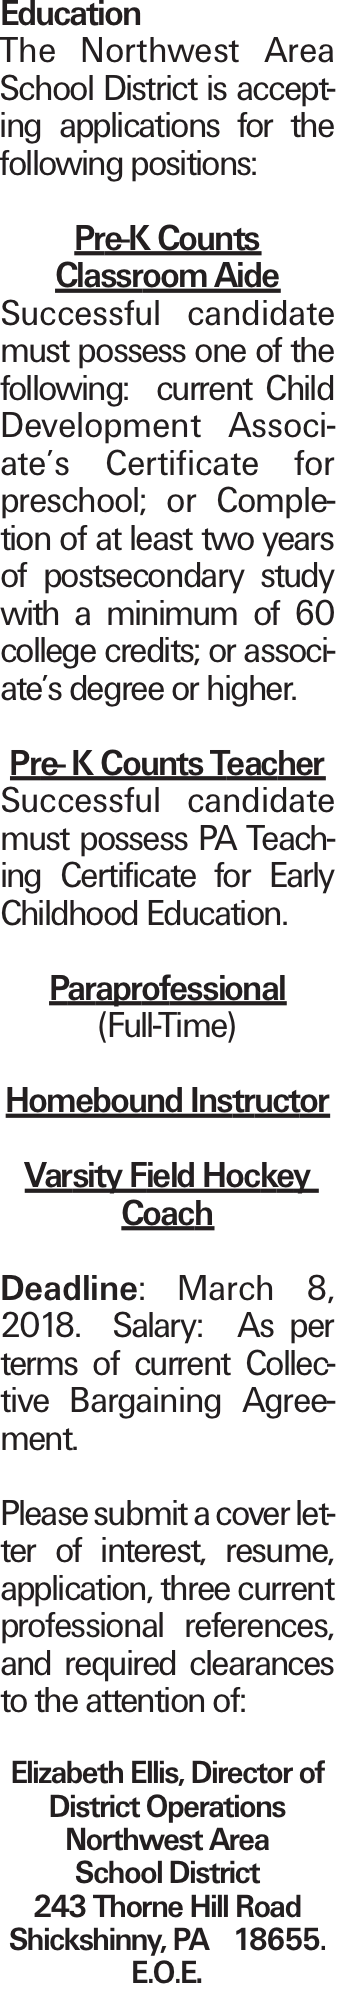 Education The Northwest Area School District is accepting applications for the following positions: Pre-K Counts Classroom Aide Successful candidate must possess one of the following: current Child Development Associate's Certificate for preschool; or Completion of at least two years of postsecondary study with a minimum of 60 college credits; or associate's degree or higher. Pre- K Counts Teacher Successful candidate must possess PA Teaching Certificate for Early Childhood Education. Paraprofessional (Full-Time) Homebound Instructor Varsity Field Hockey Coach Deadline: March 8, 2018. Salary:  As per terms of current Collective Bargaining Agreement. Please submit a cover letter of interest, resume, application, three current professional references, and required clearances to the attention of: Elizabeth Ellis, Director of District Operations Northwest Area School District 243 Thorne Hill Road Shickshinny, PA  18655.  E.O.E.